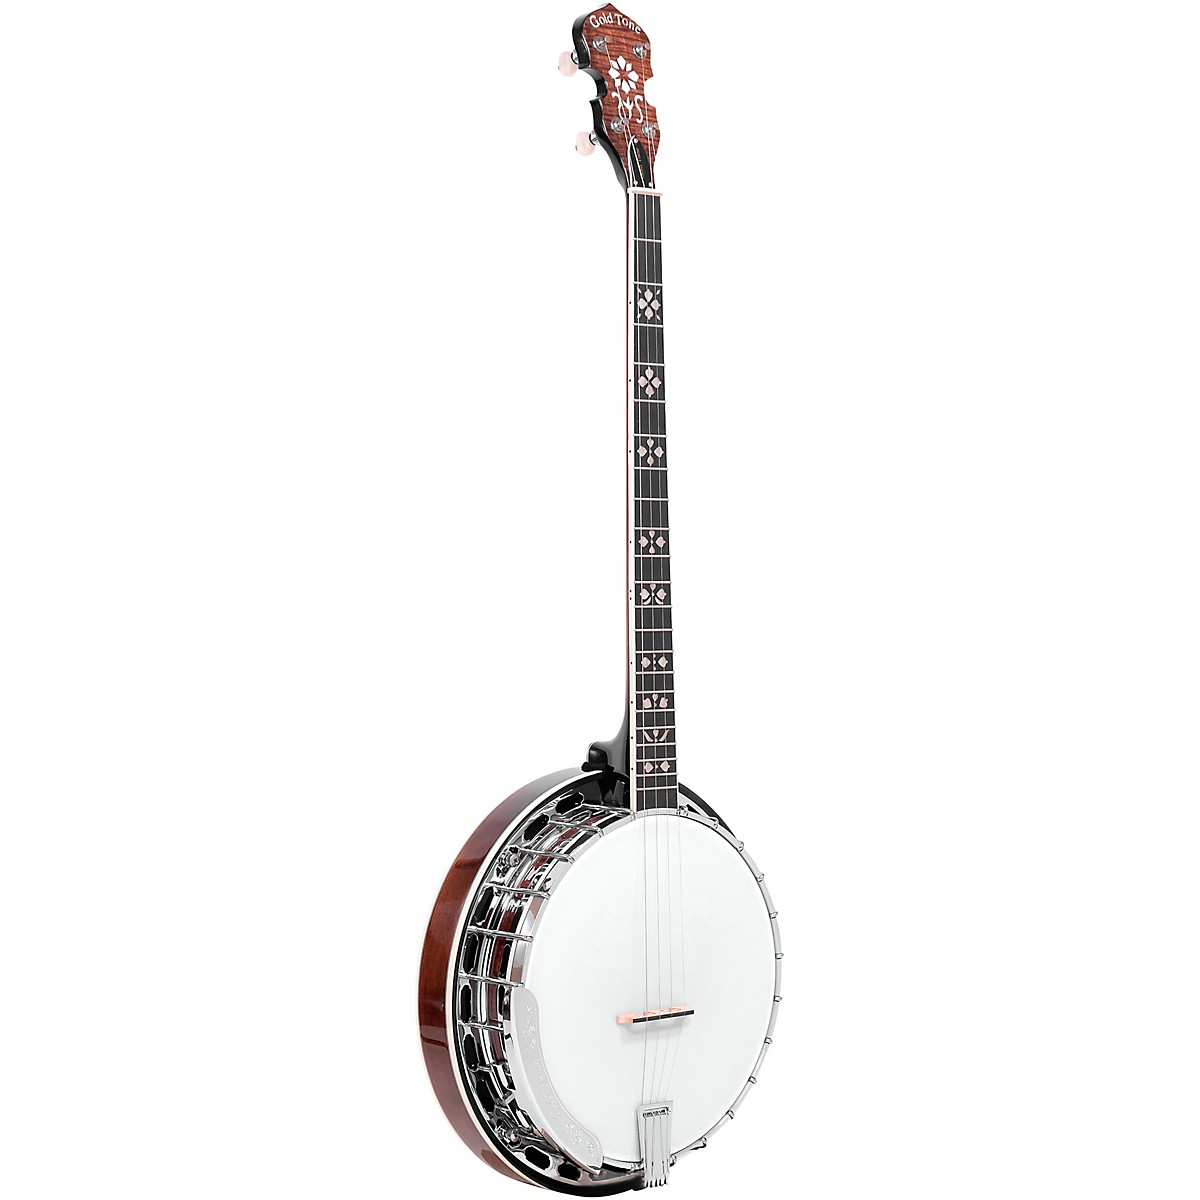 Gold Tone PS-250 Plectrum Special Banjo